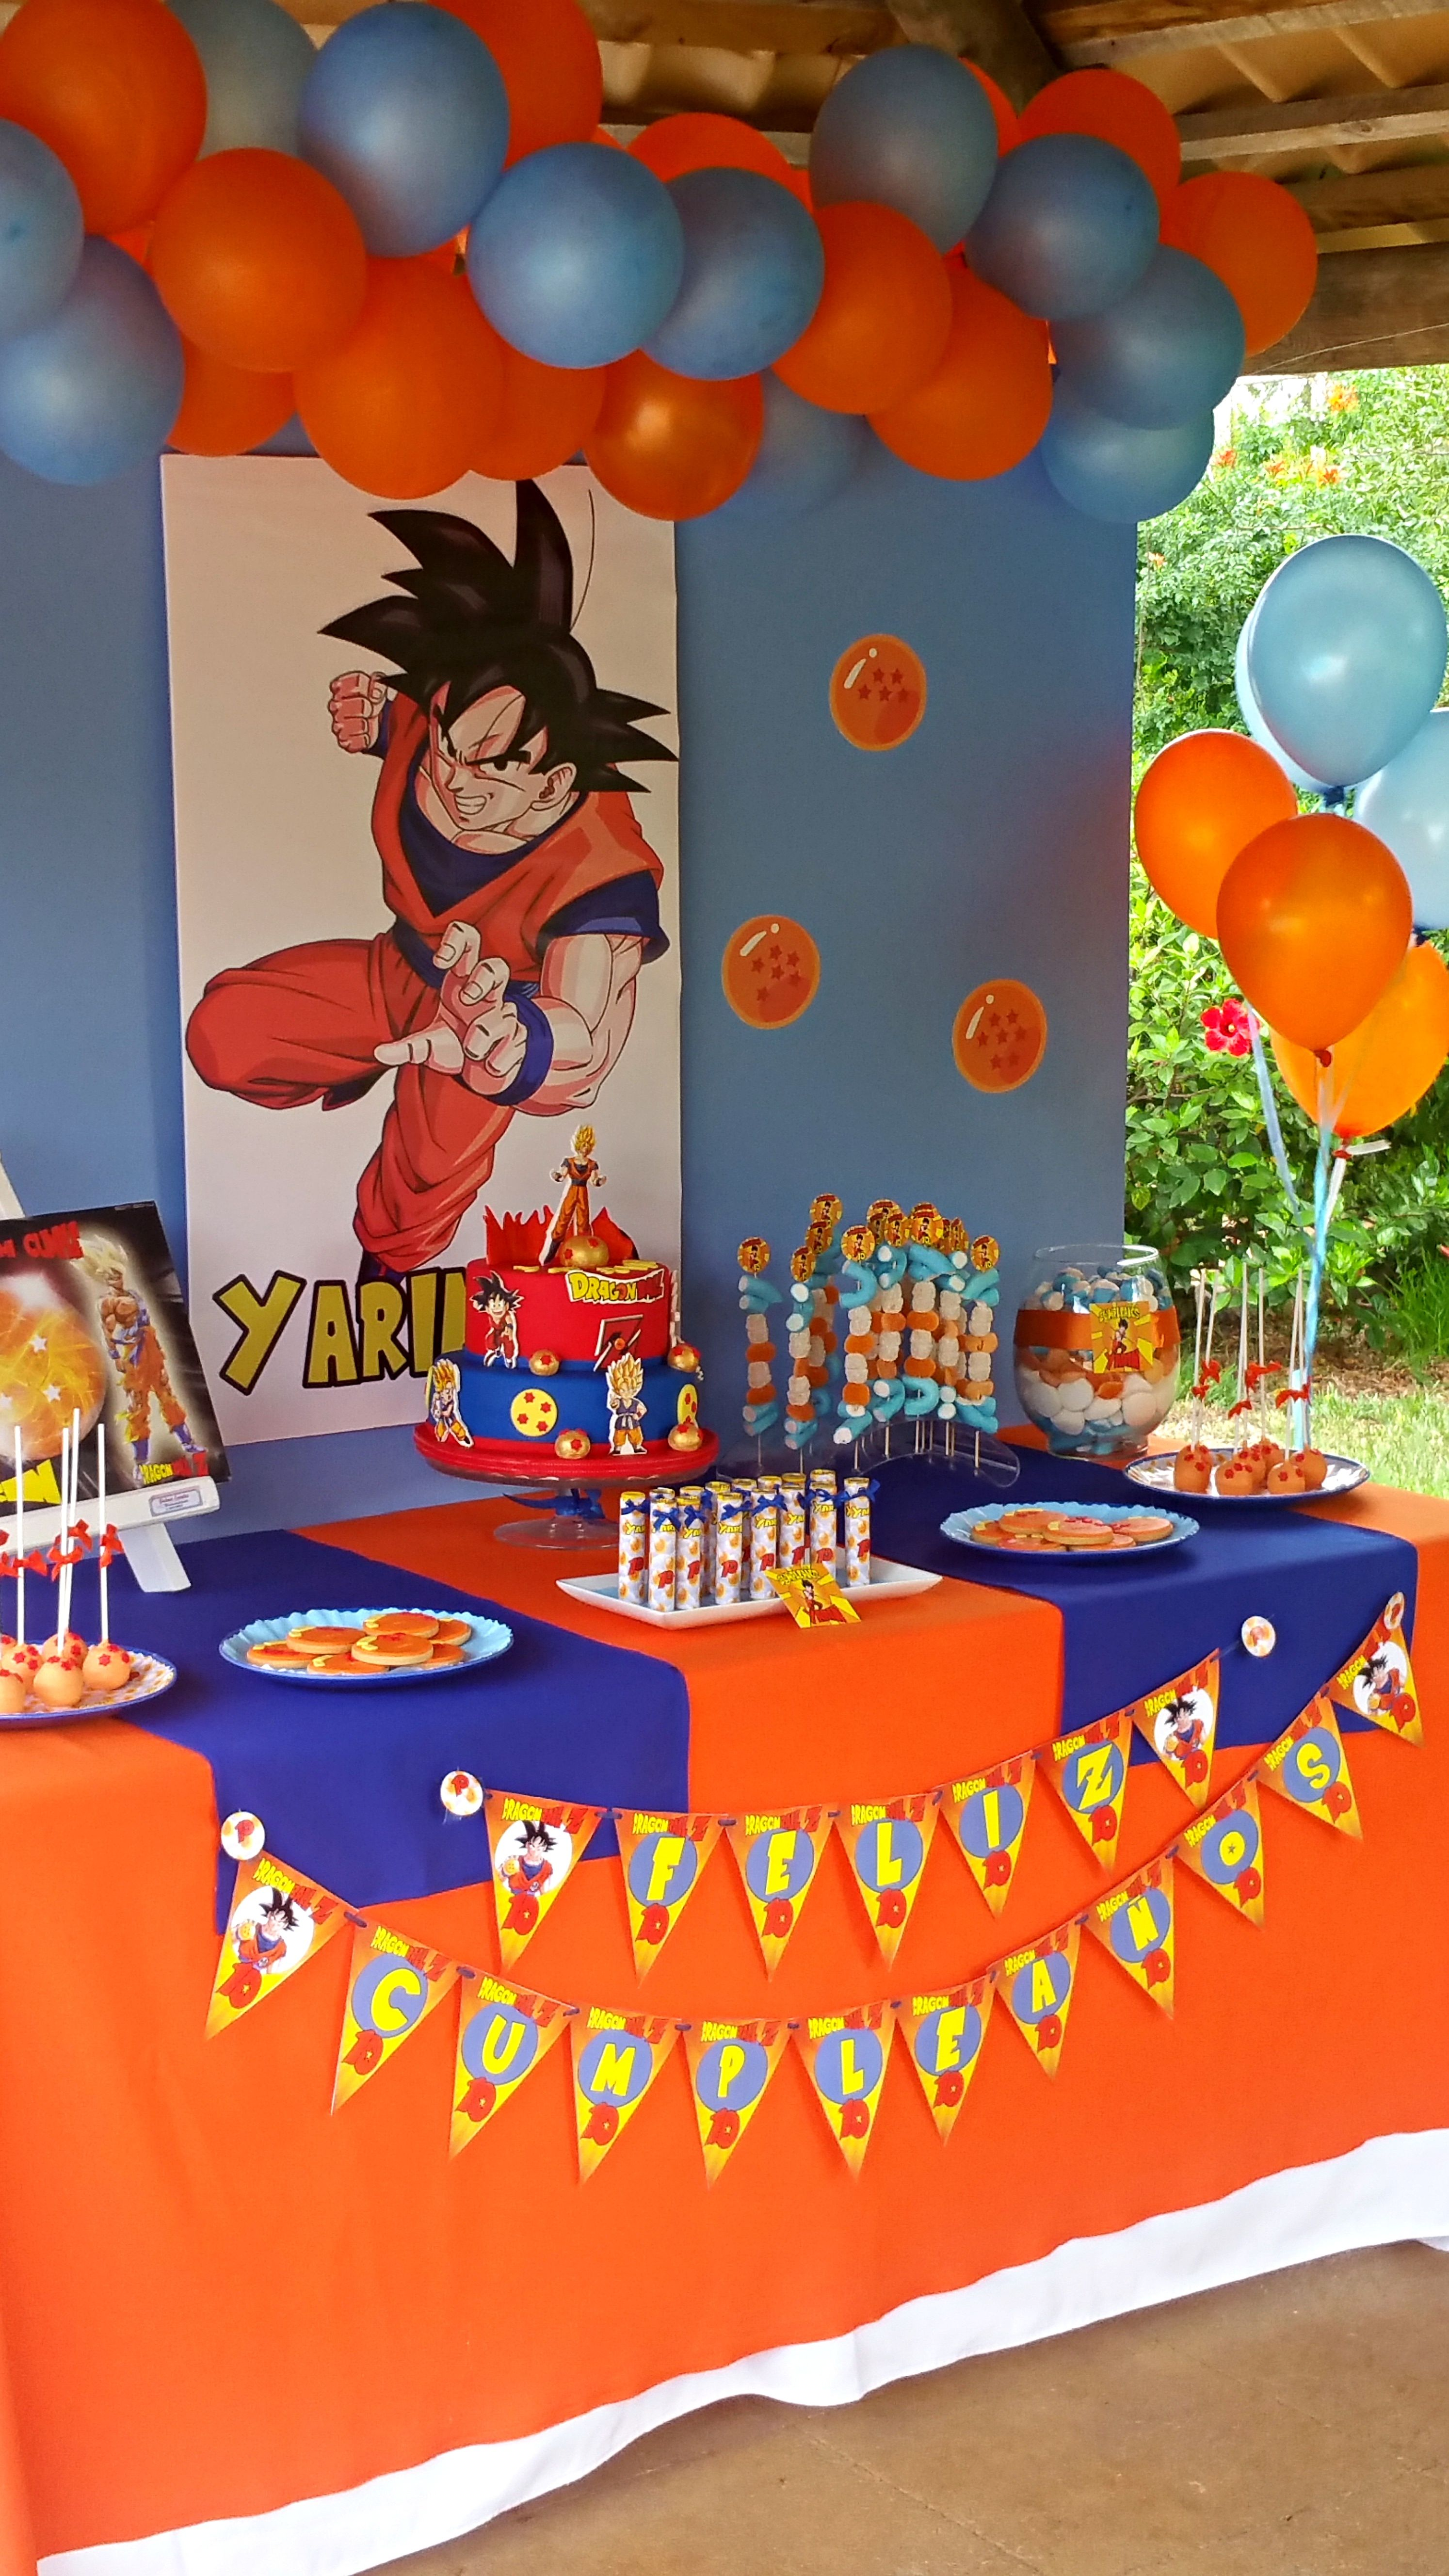 Decoraci n mesa dulce drag n ball ni o decor design for Decoration dragon ball